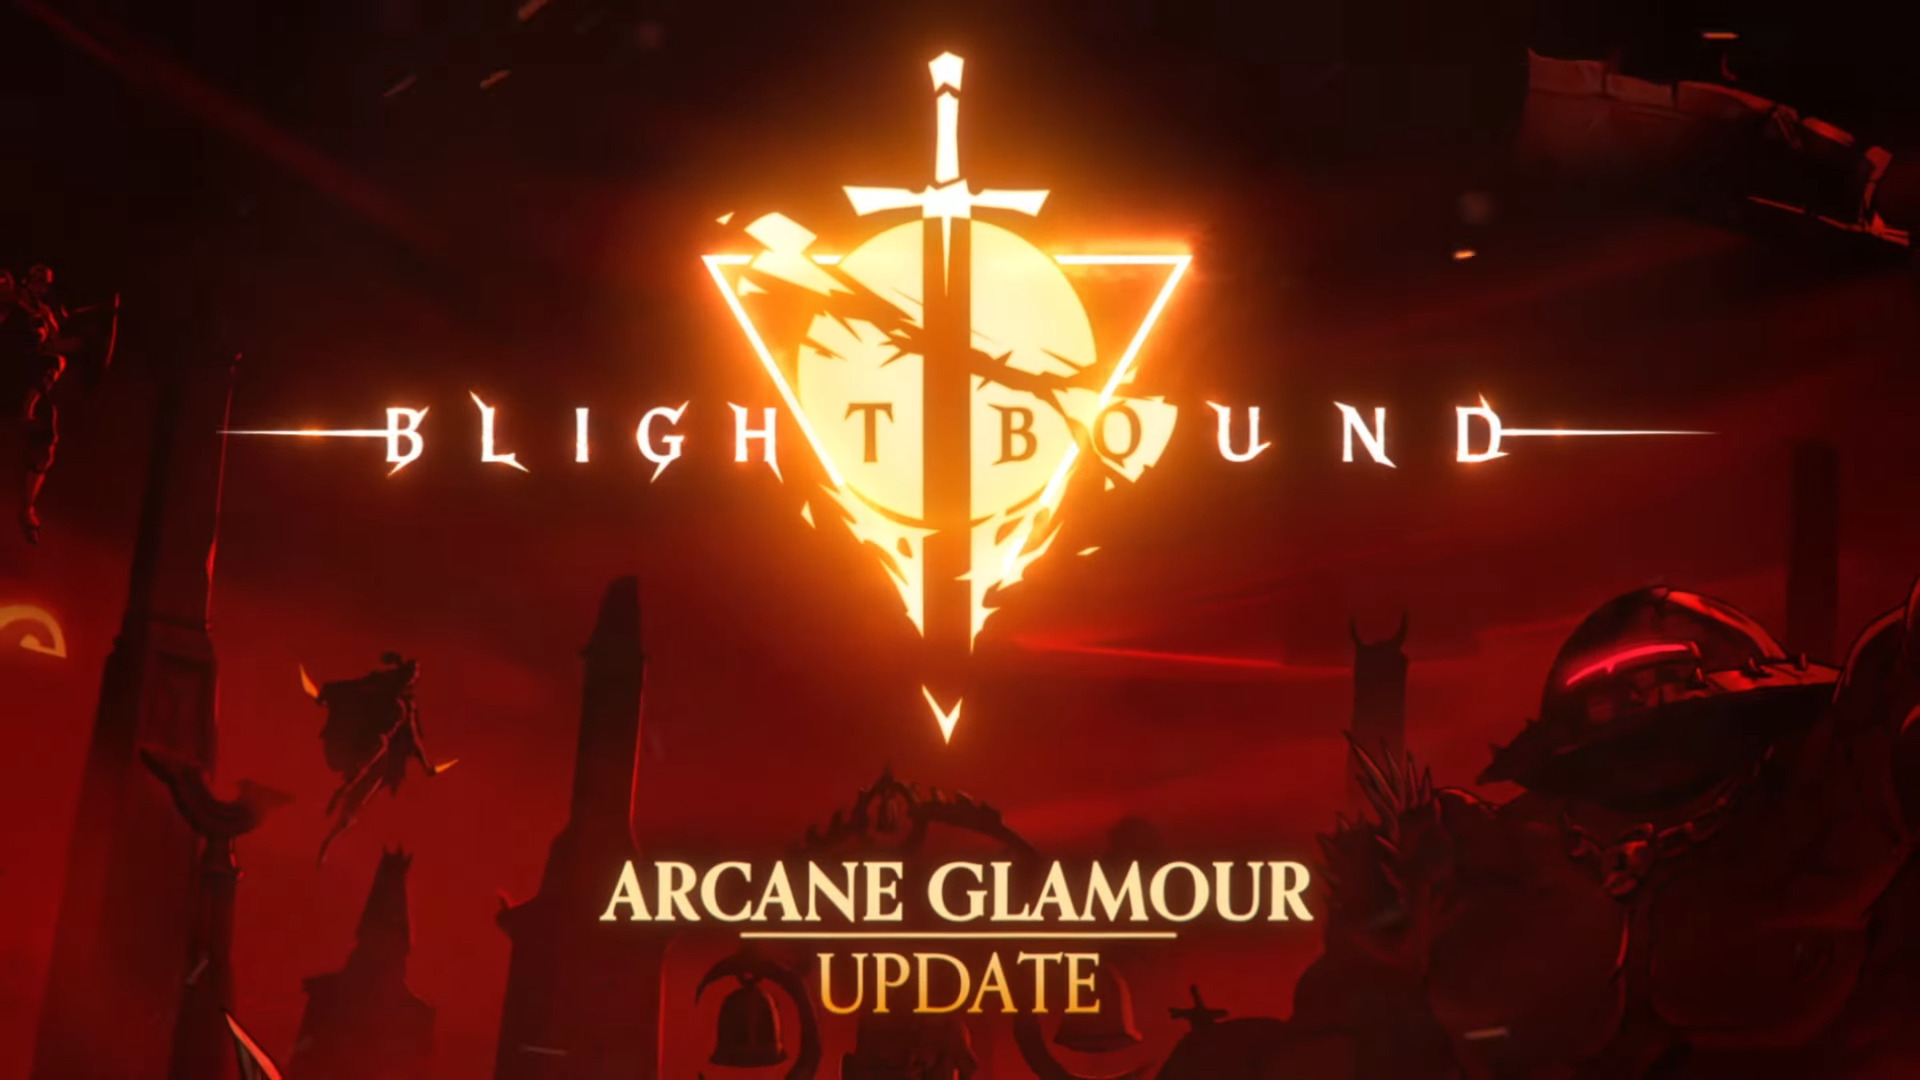 Blightbound - Arcane Glamour Update | Ronimo Games, Devolver Digital